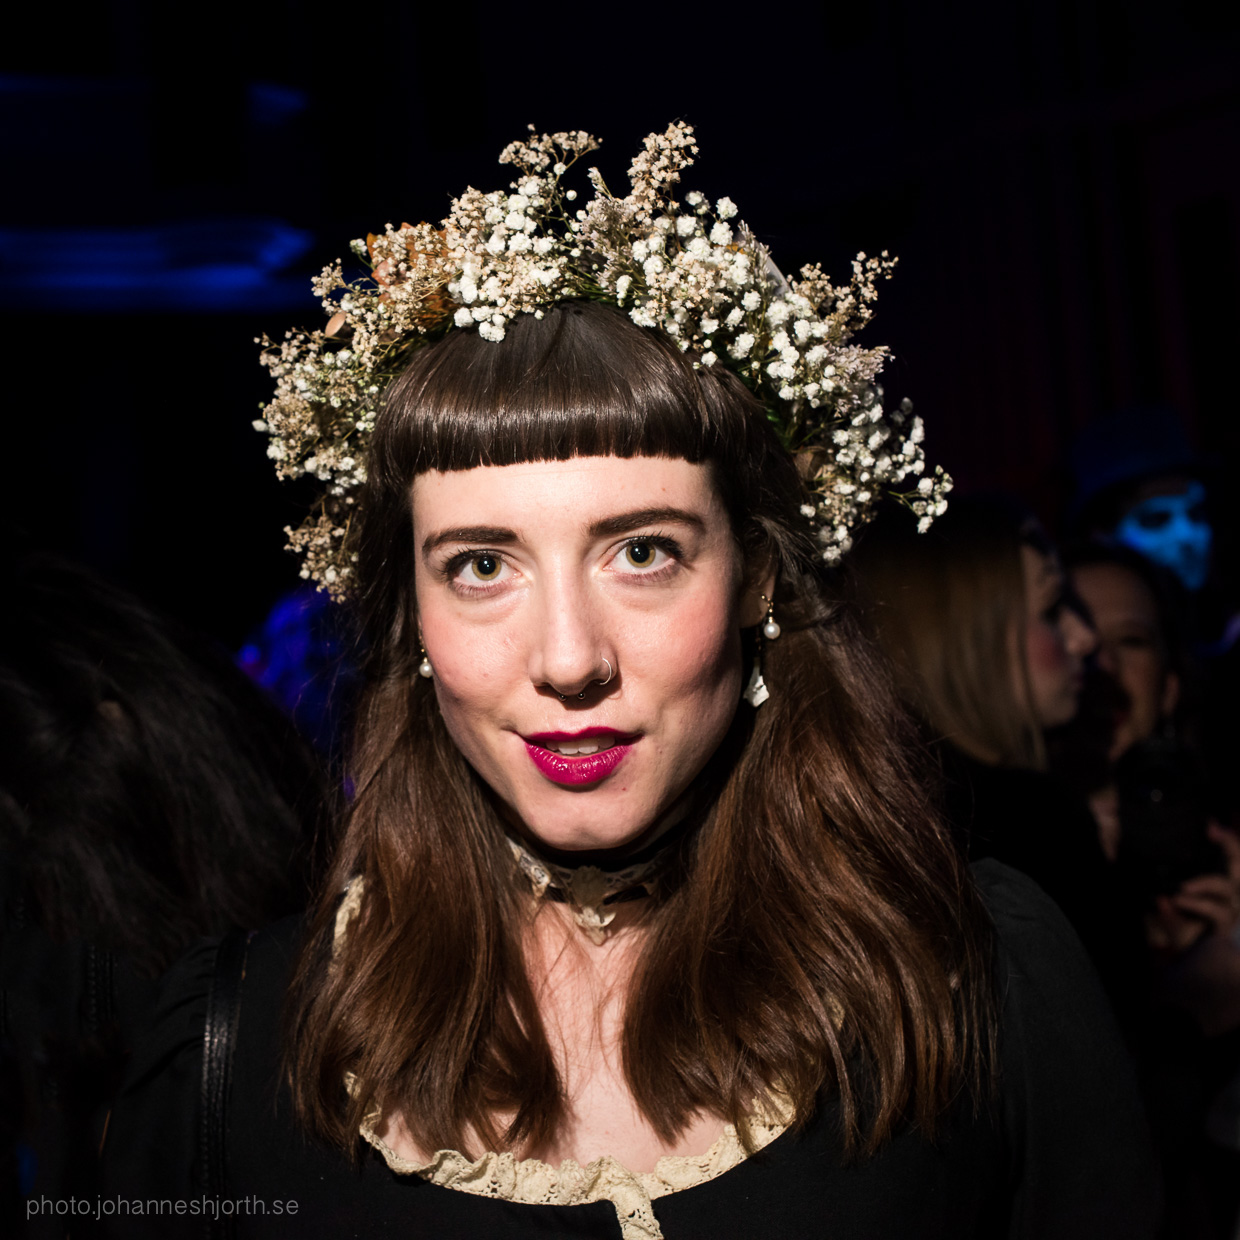 hjorthmedh-neon-moon-cambridge-halloween-ball-2015-68